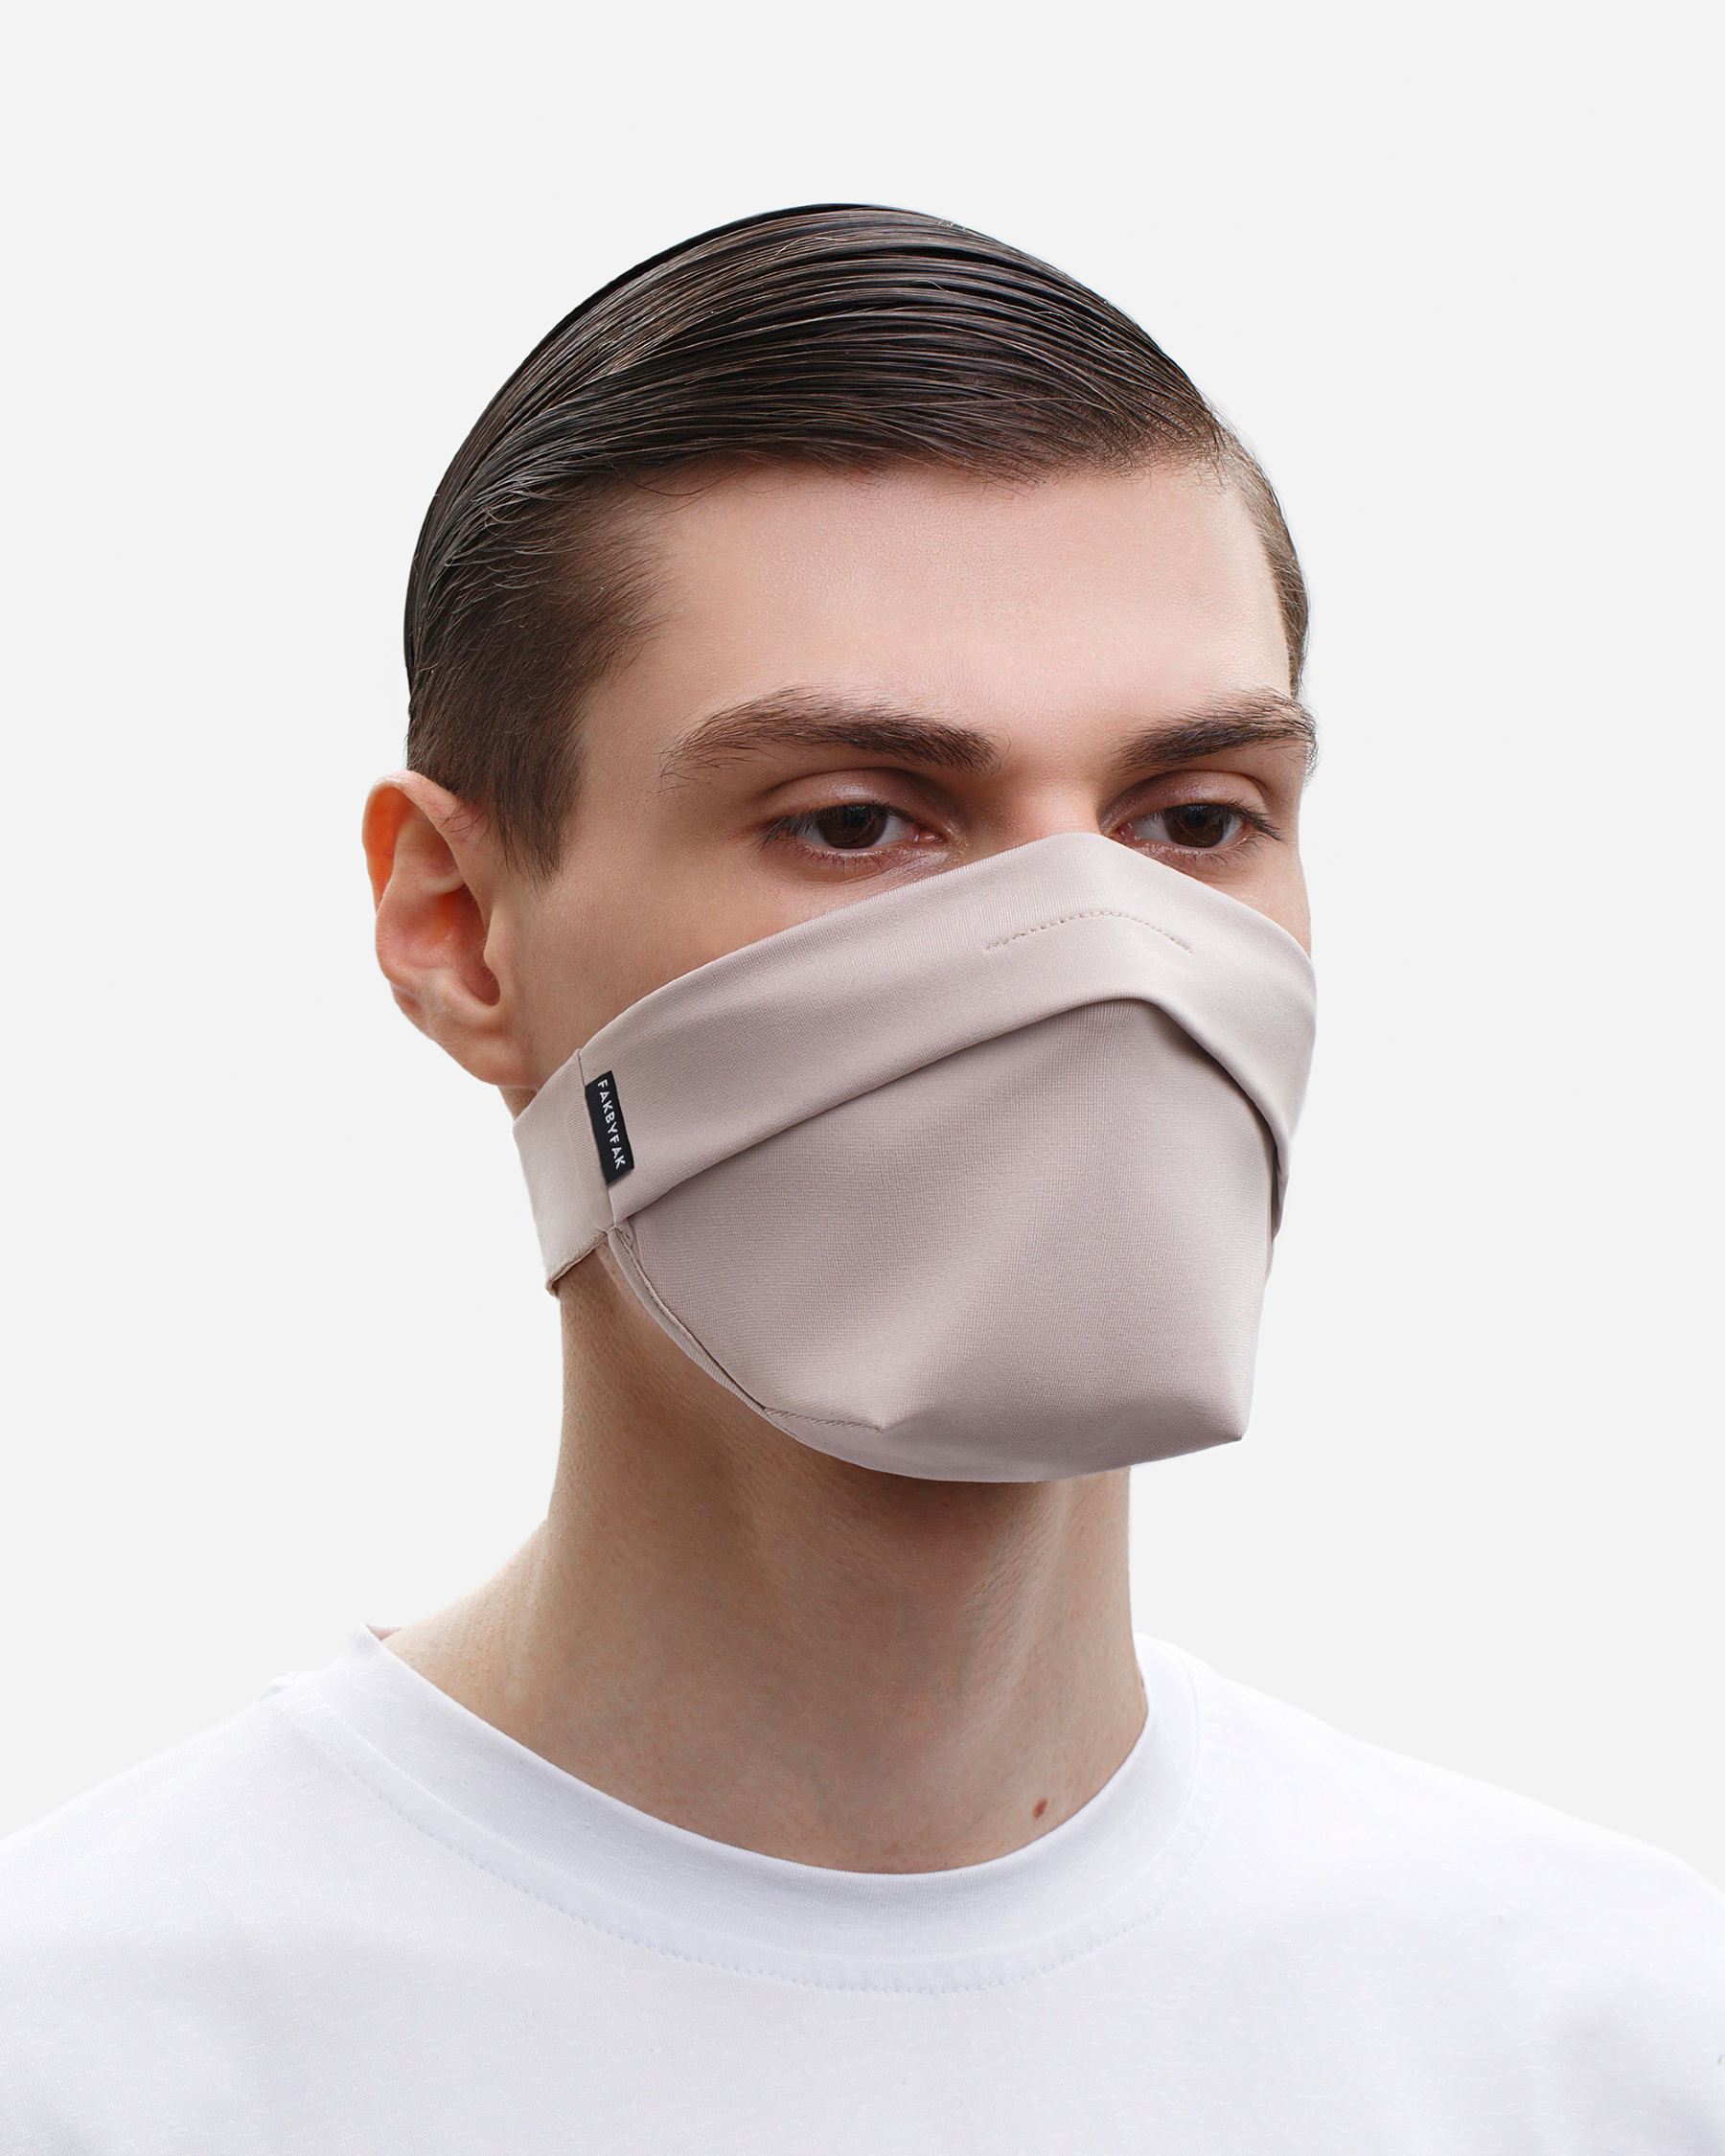 FAKBYFAK  The Vega. Ear Strap-Free High-End Protective Antibacterial (ATB-UV+) Face Mask. Beige Code: FBF-42101-72